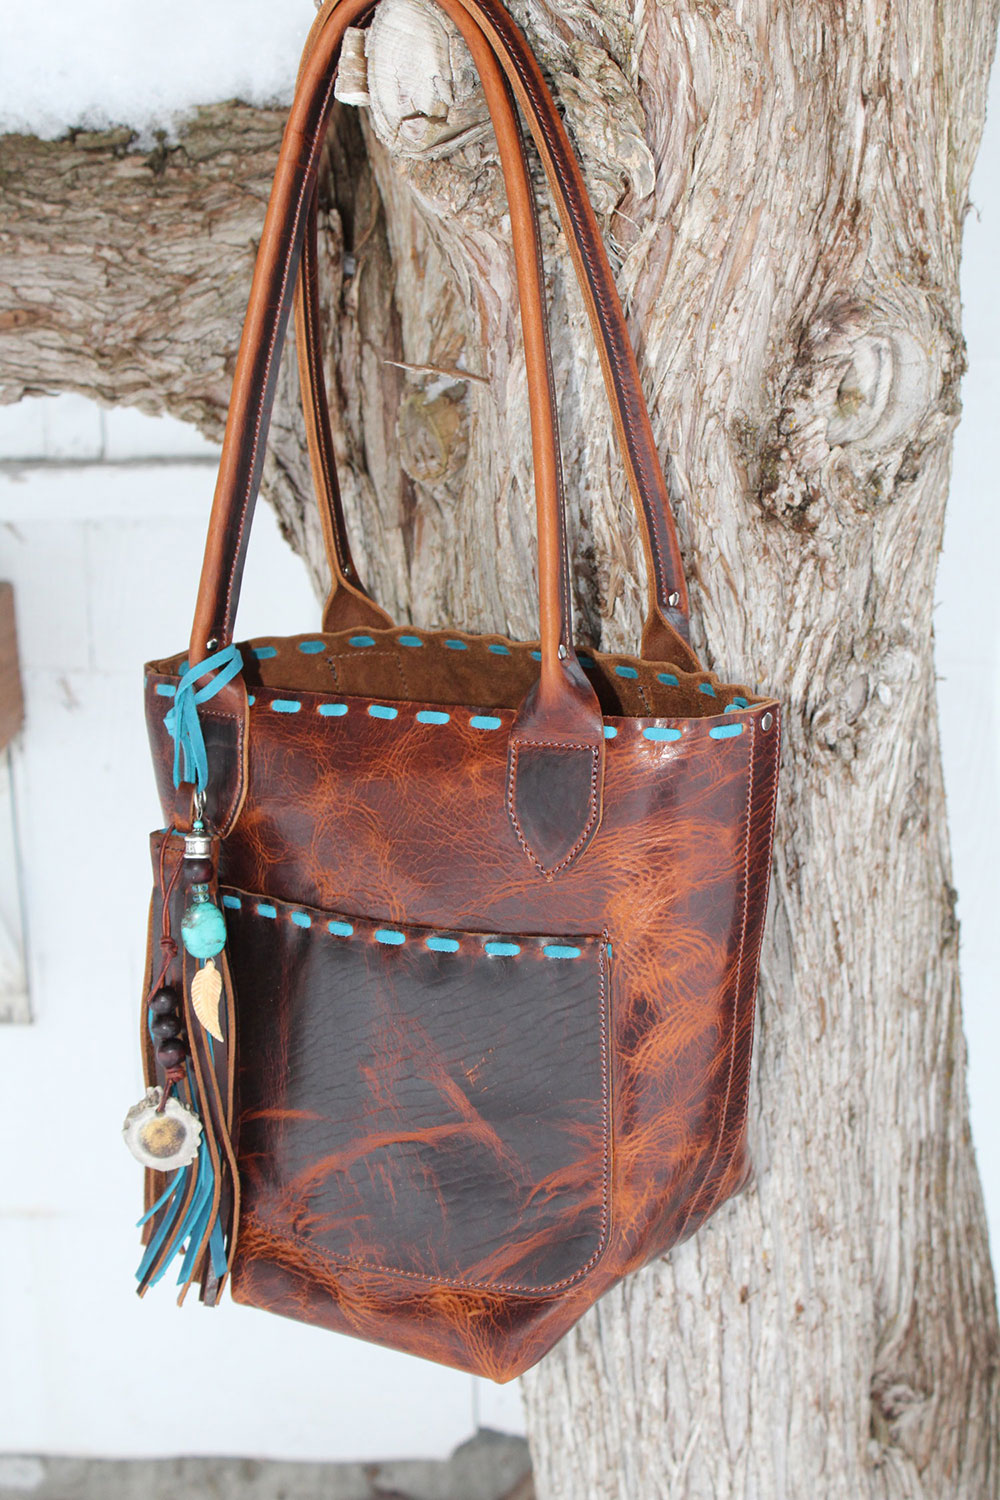 Emery Hill Tote - Bergland Bison/Turquoise Handstitching